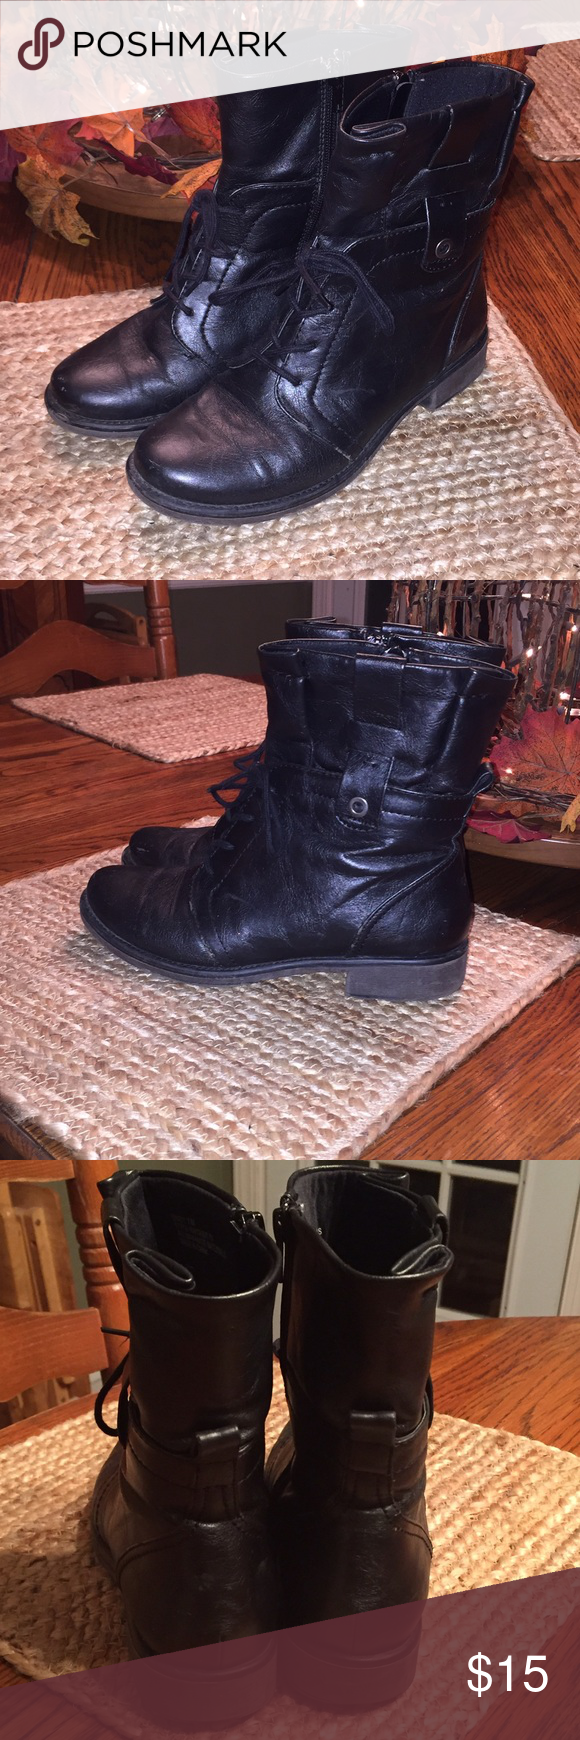 Bare Traps Combat Boots Worn, but in good condition. Size 7. Bare Traps Shoes Combat & Moto Boots